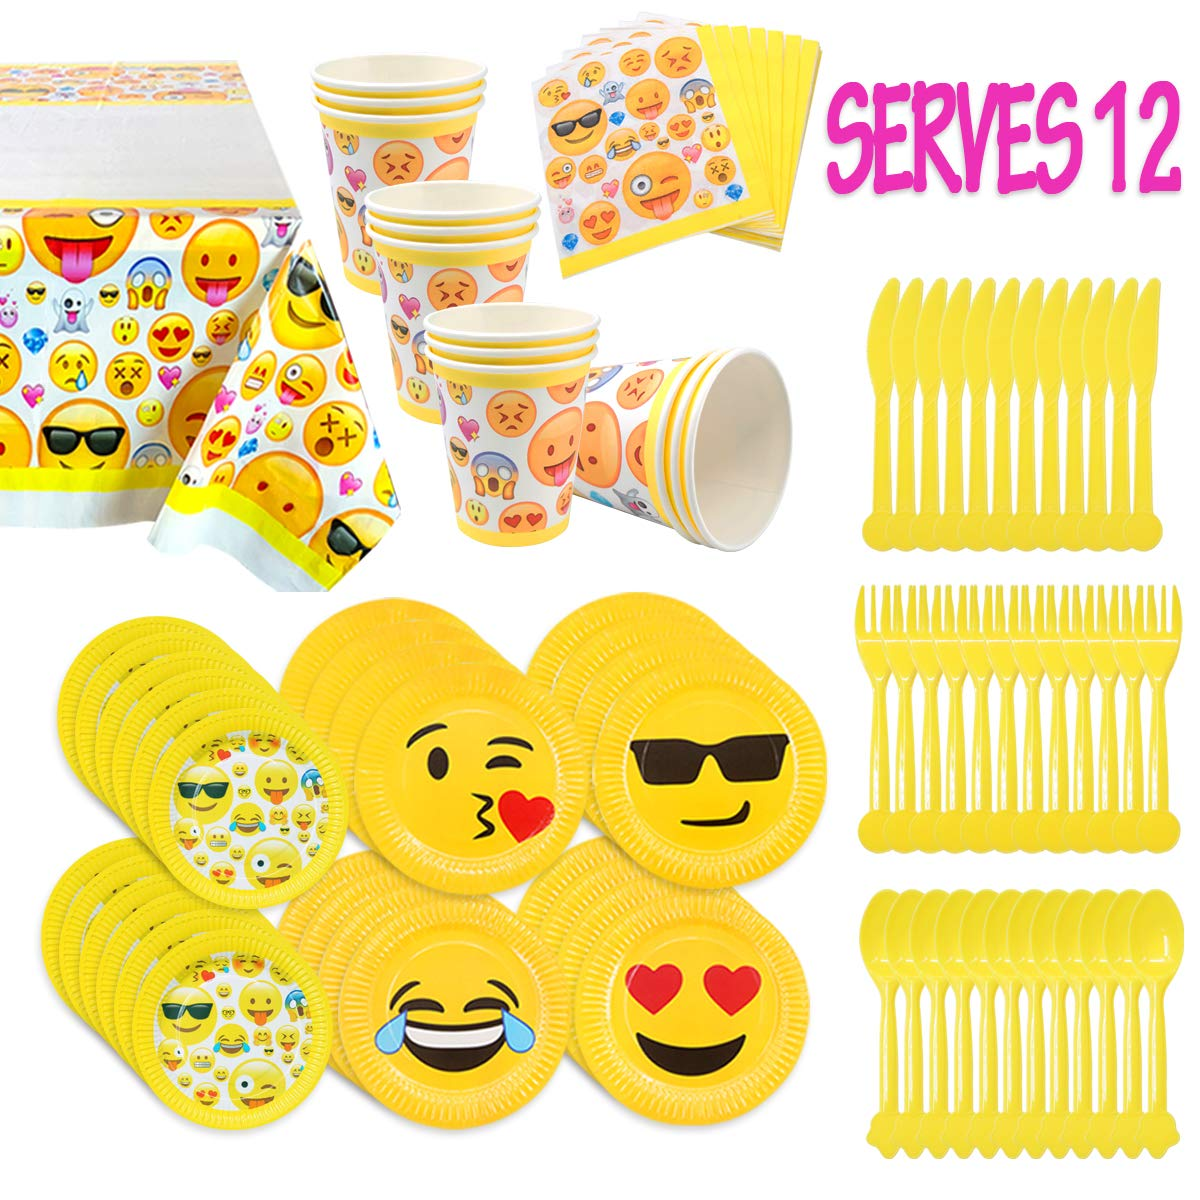 Amazon MelonBoat Emoji Party Supplies 93ct Birthday Decorations Kit Tablecloth Paper Plates Cups Napkins Happy Bulk Pack Serves 12 Toys